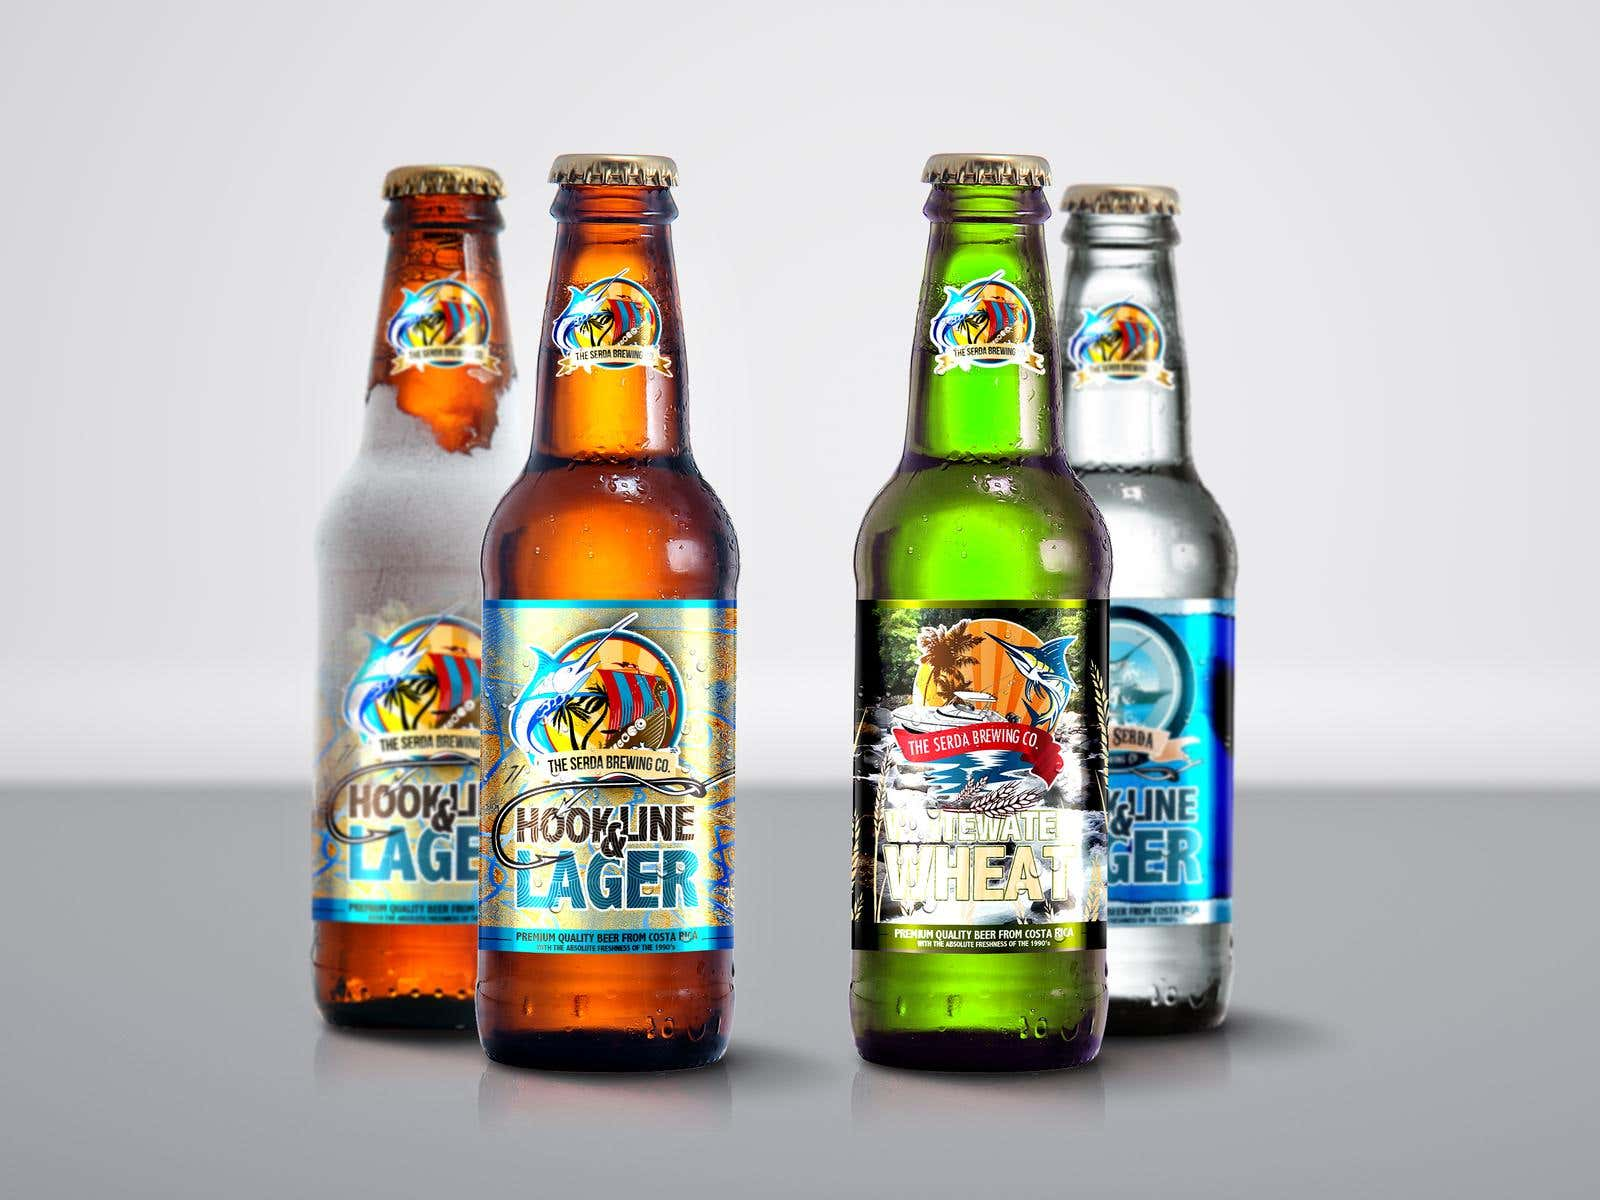 Beer-Bottle-Label-Designs.jpg